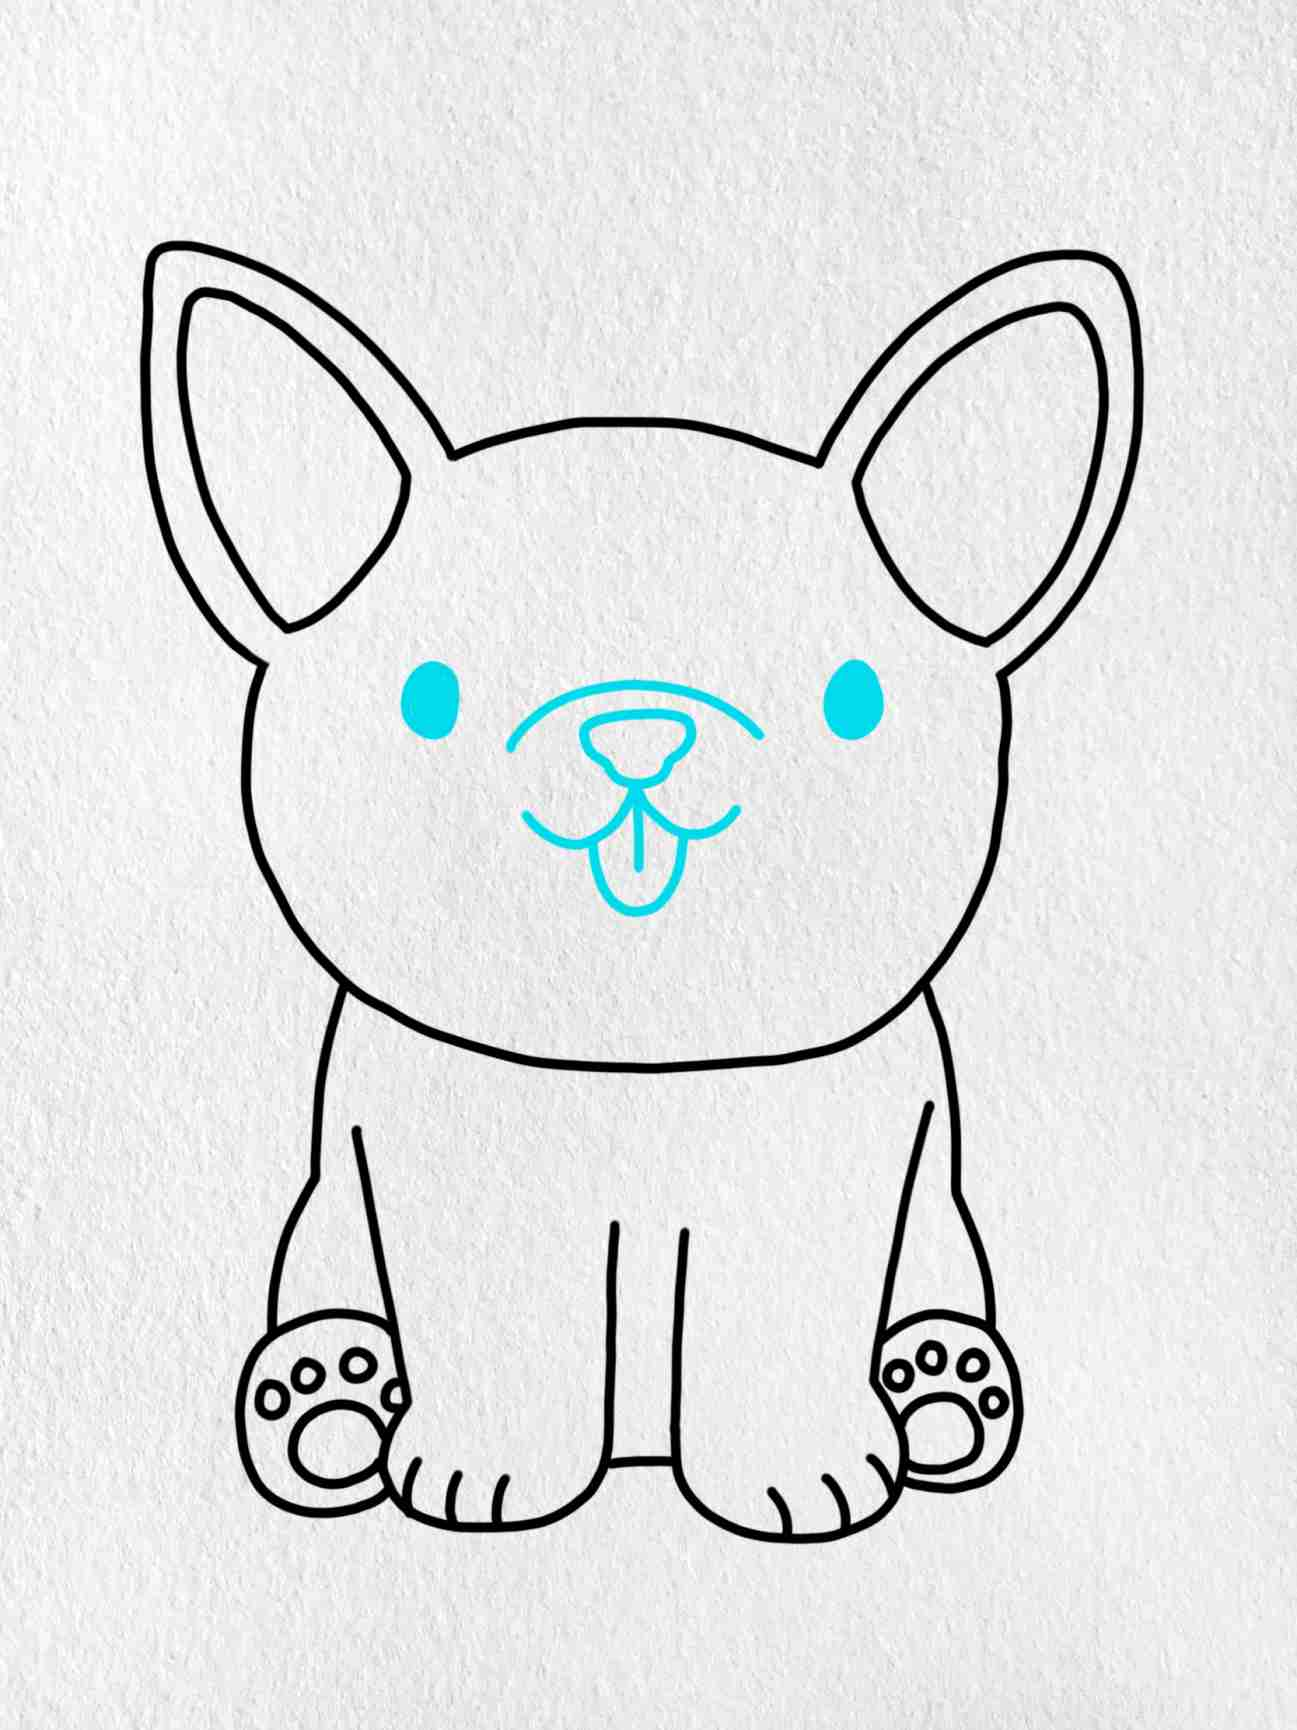 How To Draw A French Bulldog: Step 5